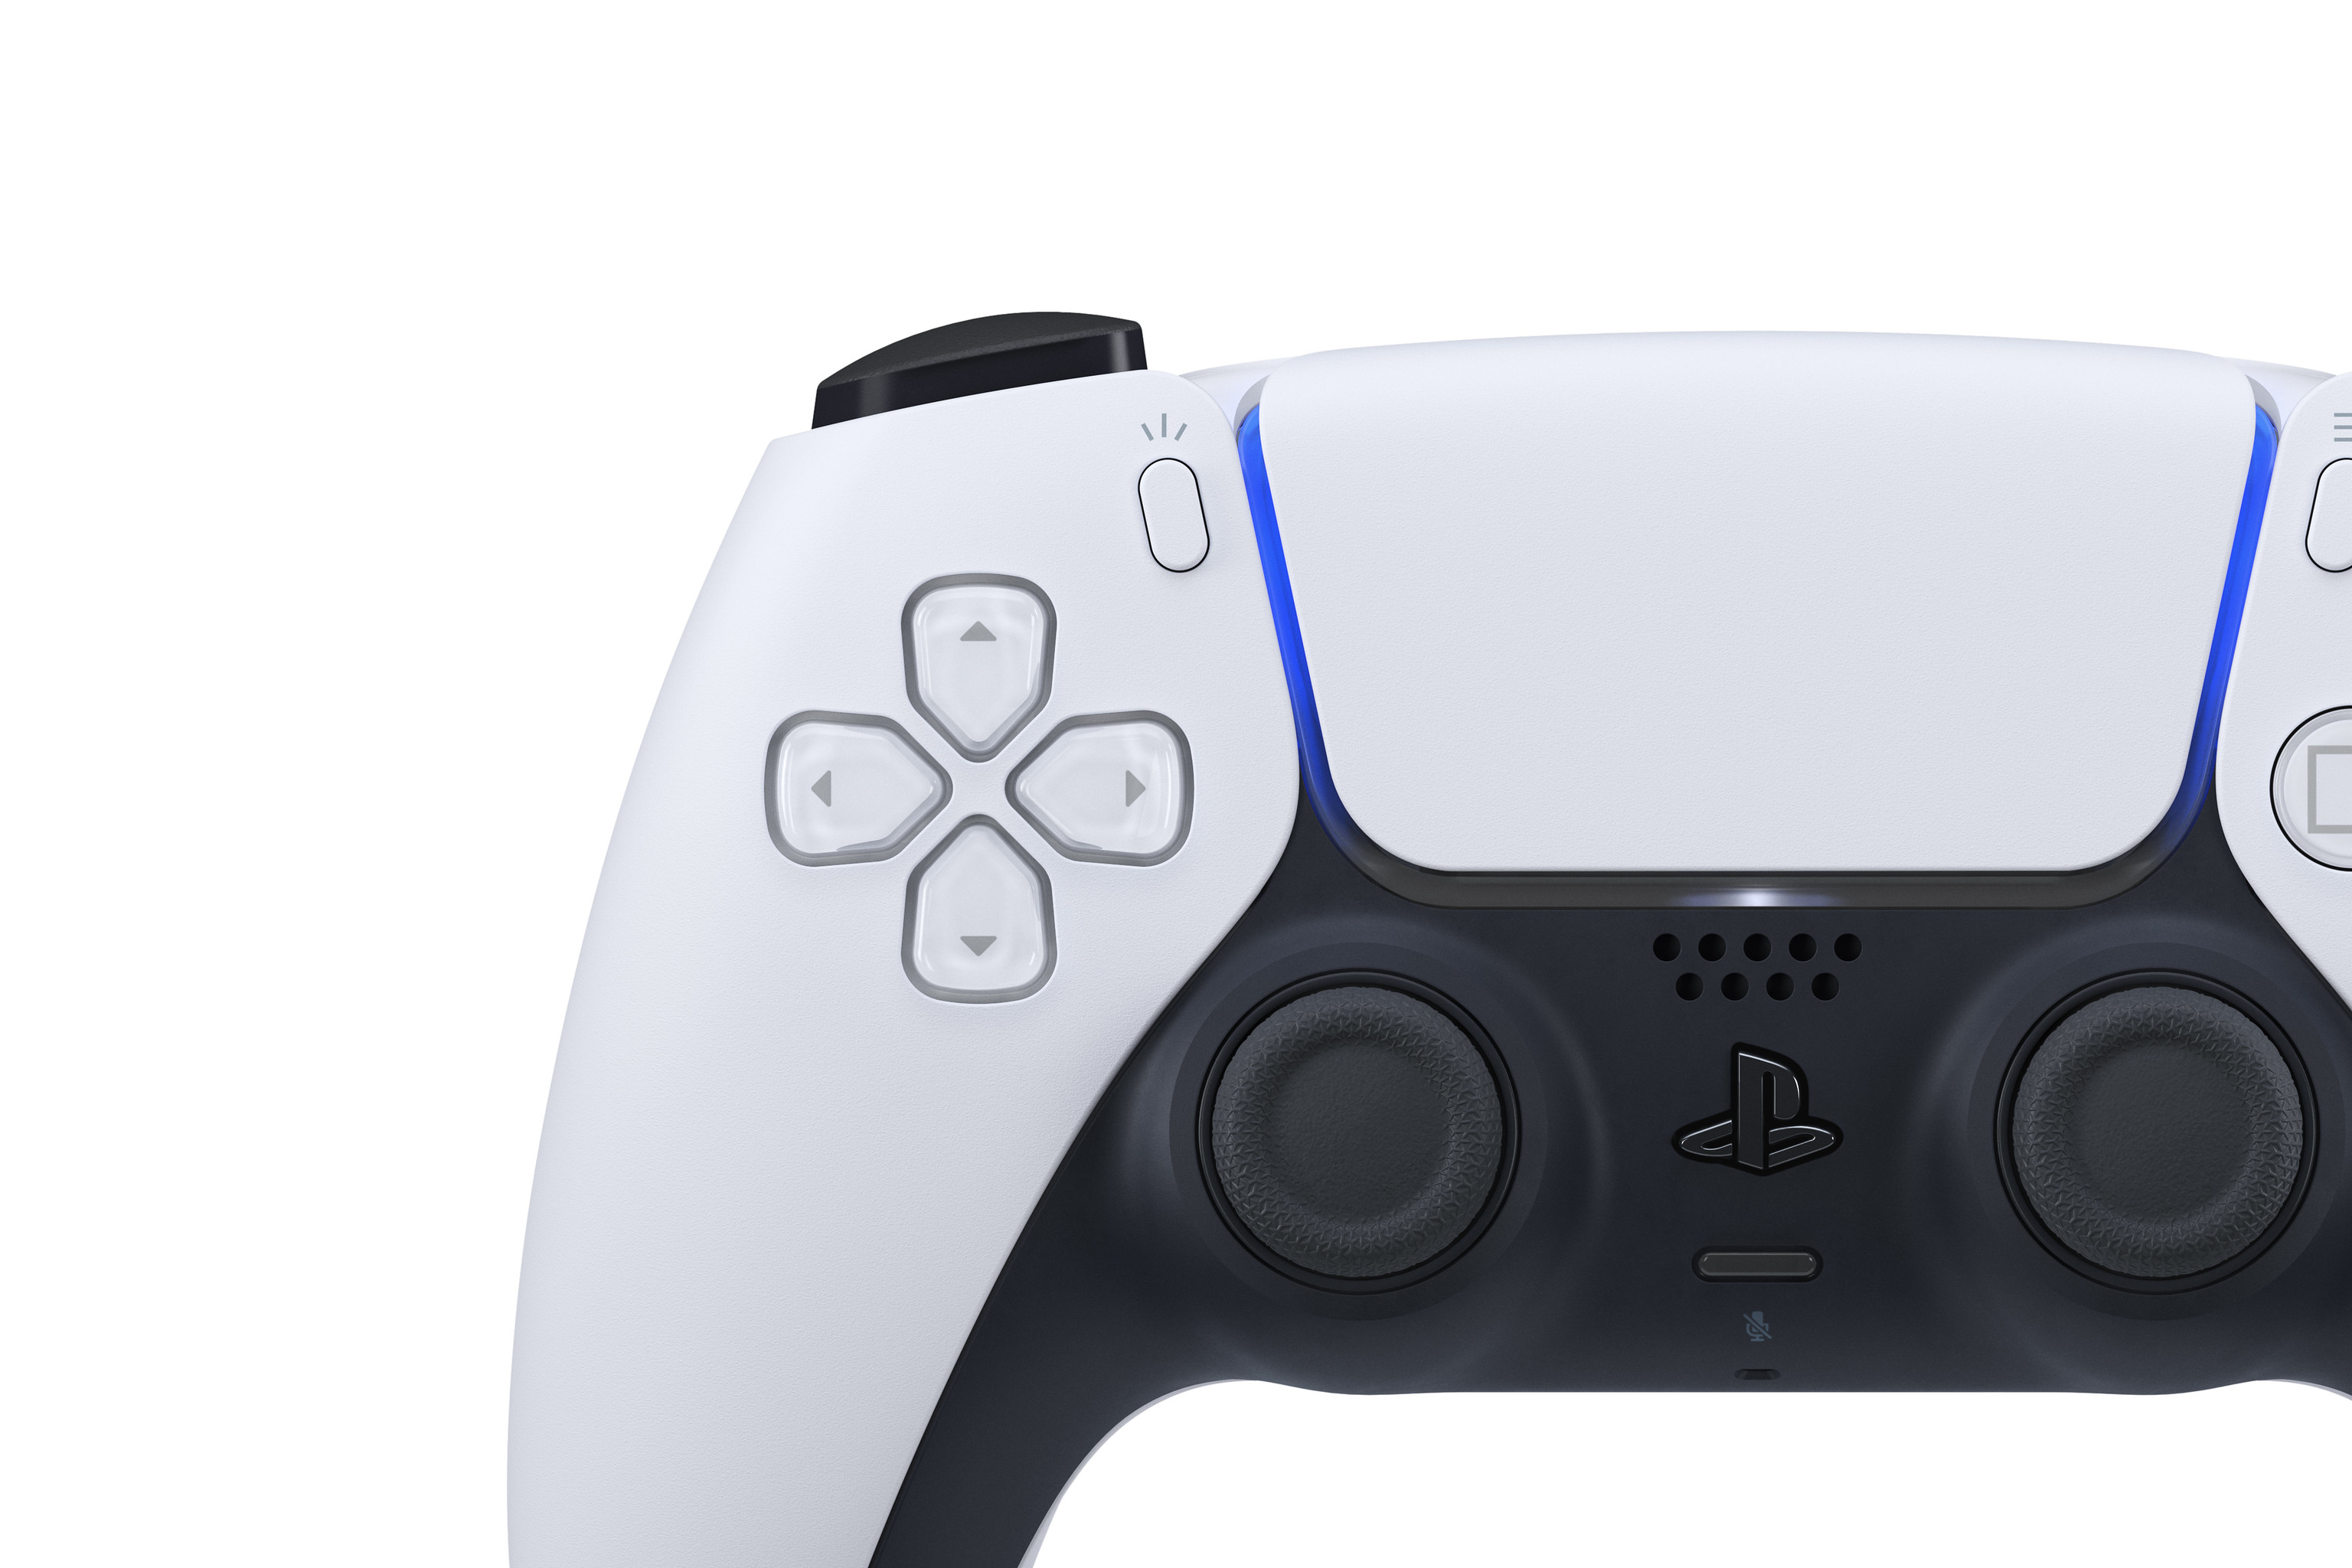 Sony reveals PS5's 'DualSense' controller with haptic feedback and 'adaptive' triggers